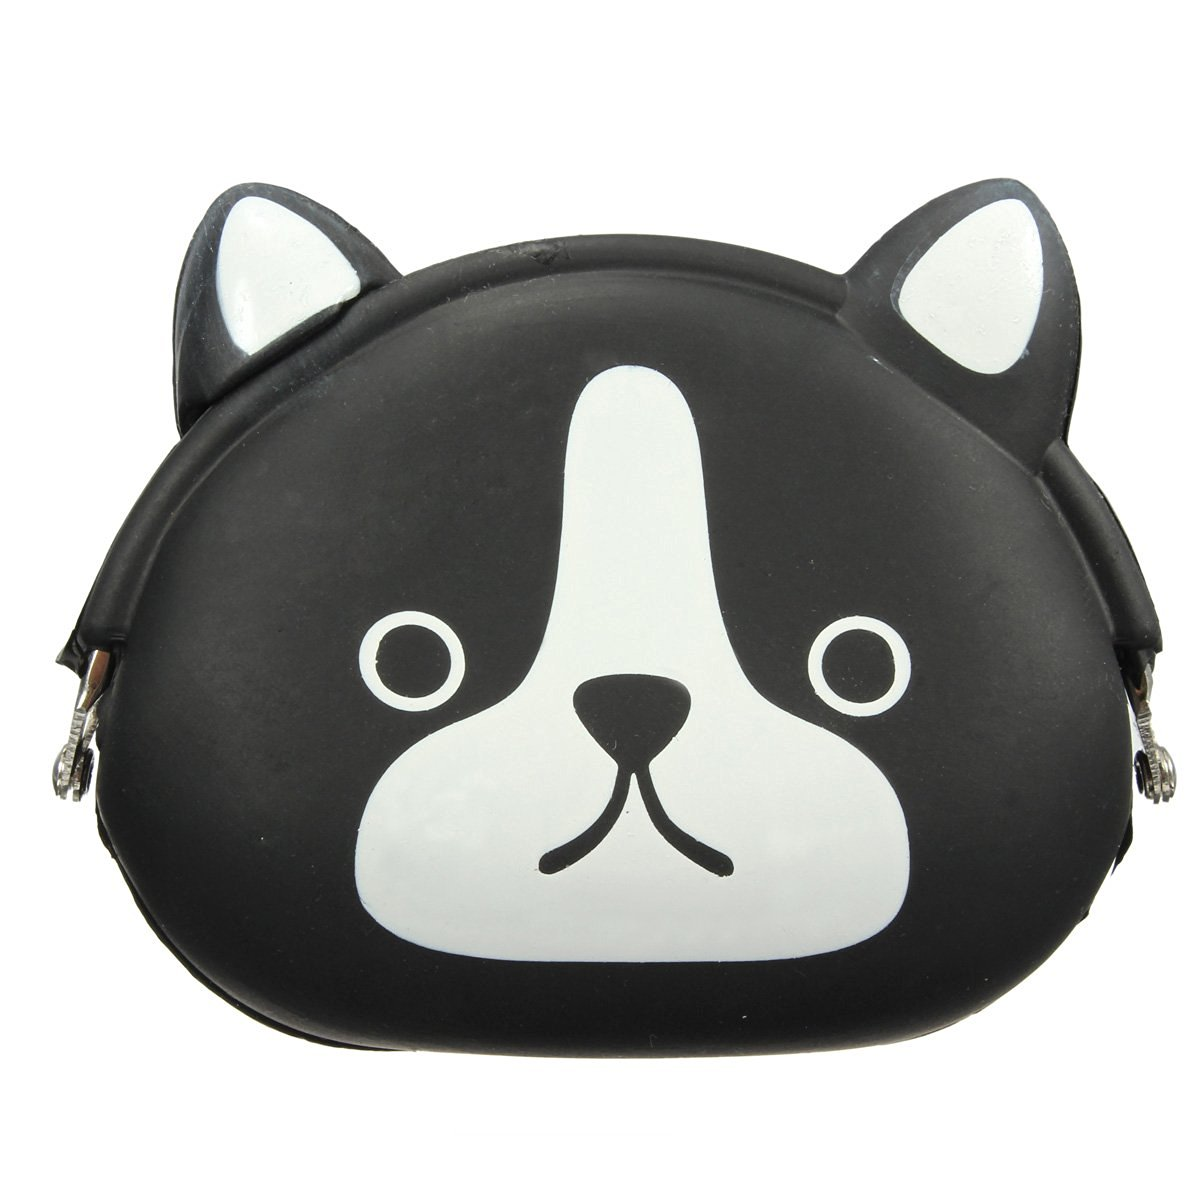 AFBC-Women Girls Wallet Kawaii Cute Cartoon Animal Silicone Jelly Coin Bag Purse Kids Gift Black dog